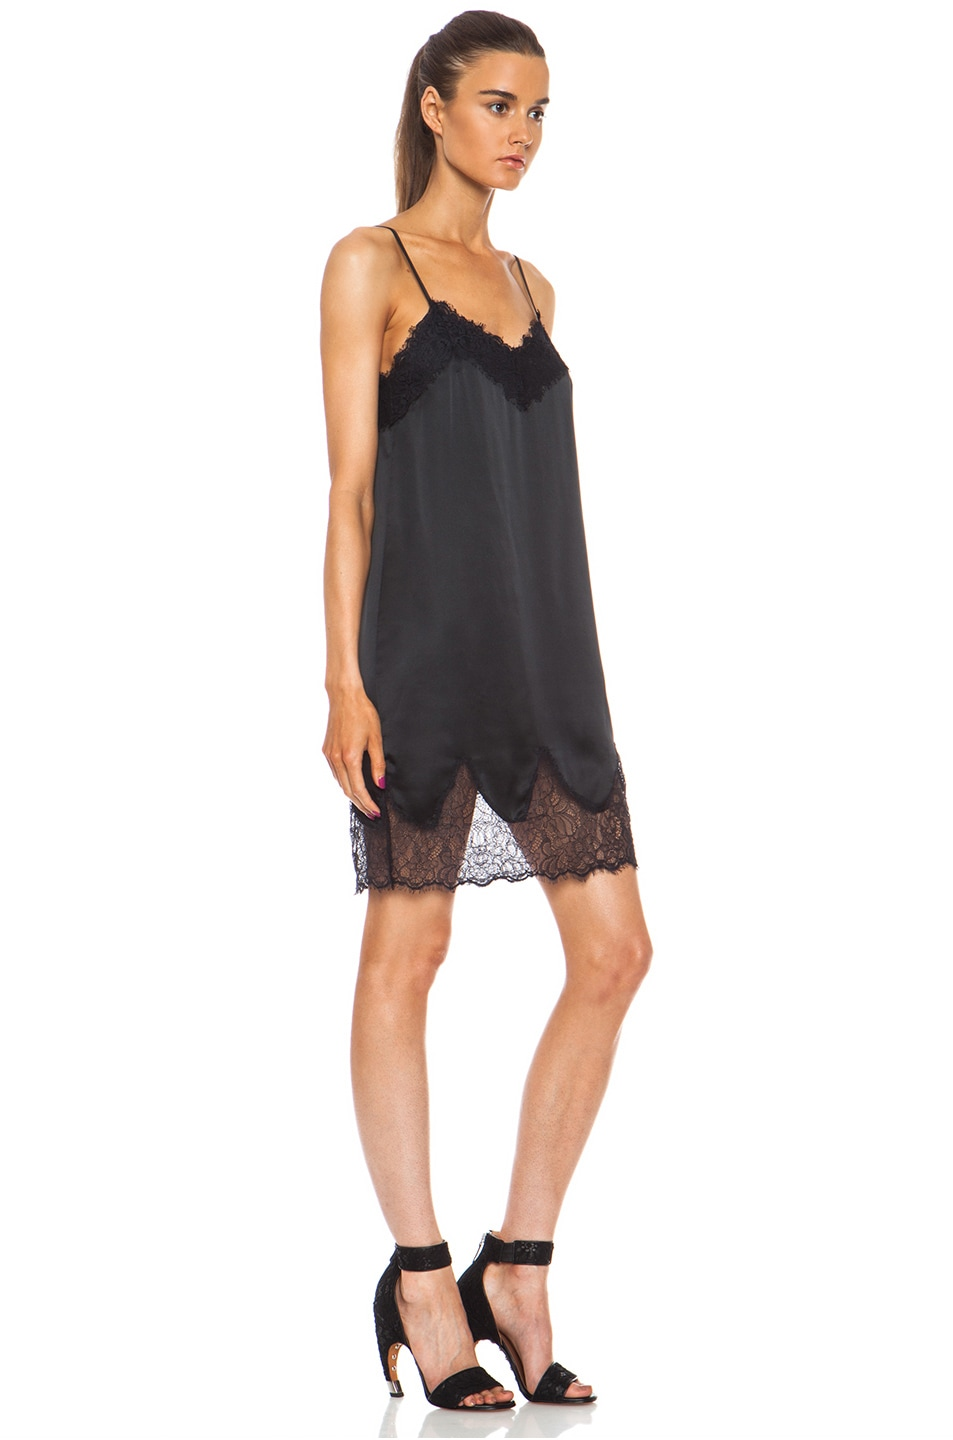 a1ed83c3e977a Image 3 of Haute Hippie Lace and Charm Silk Slip Night Dress in Black